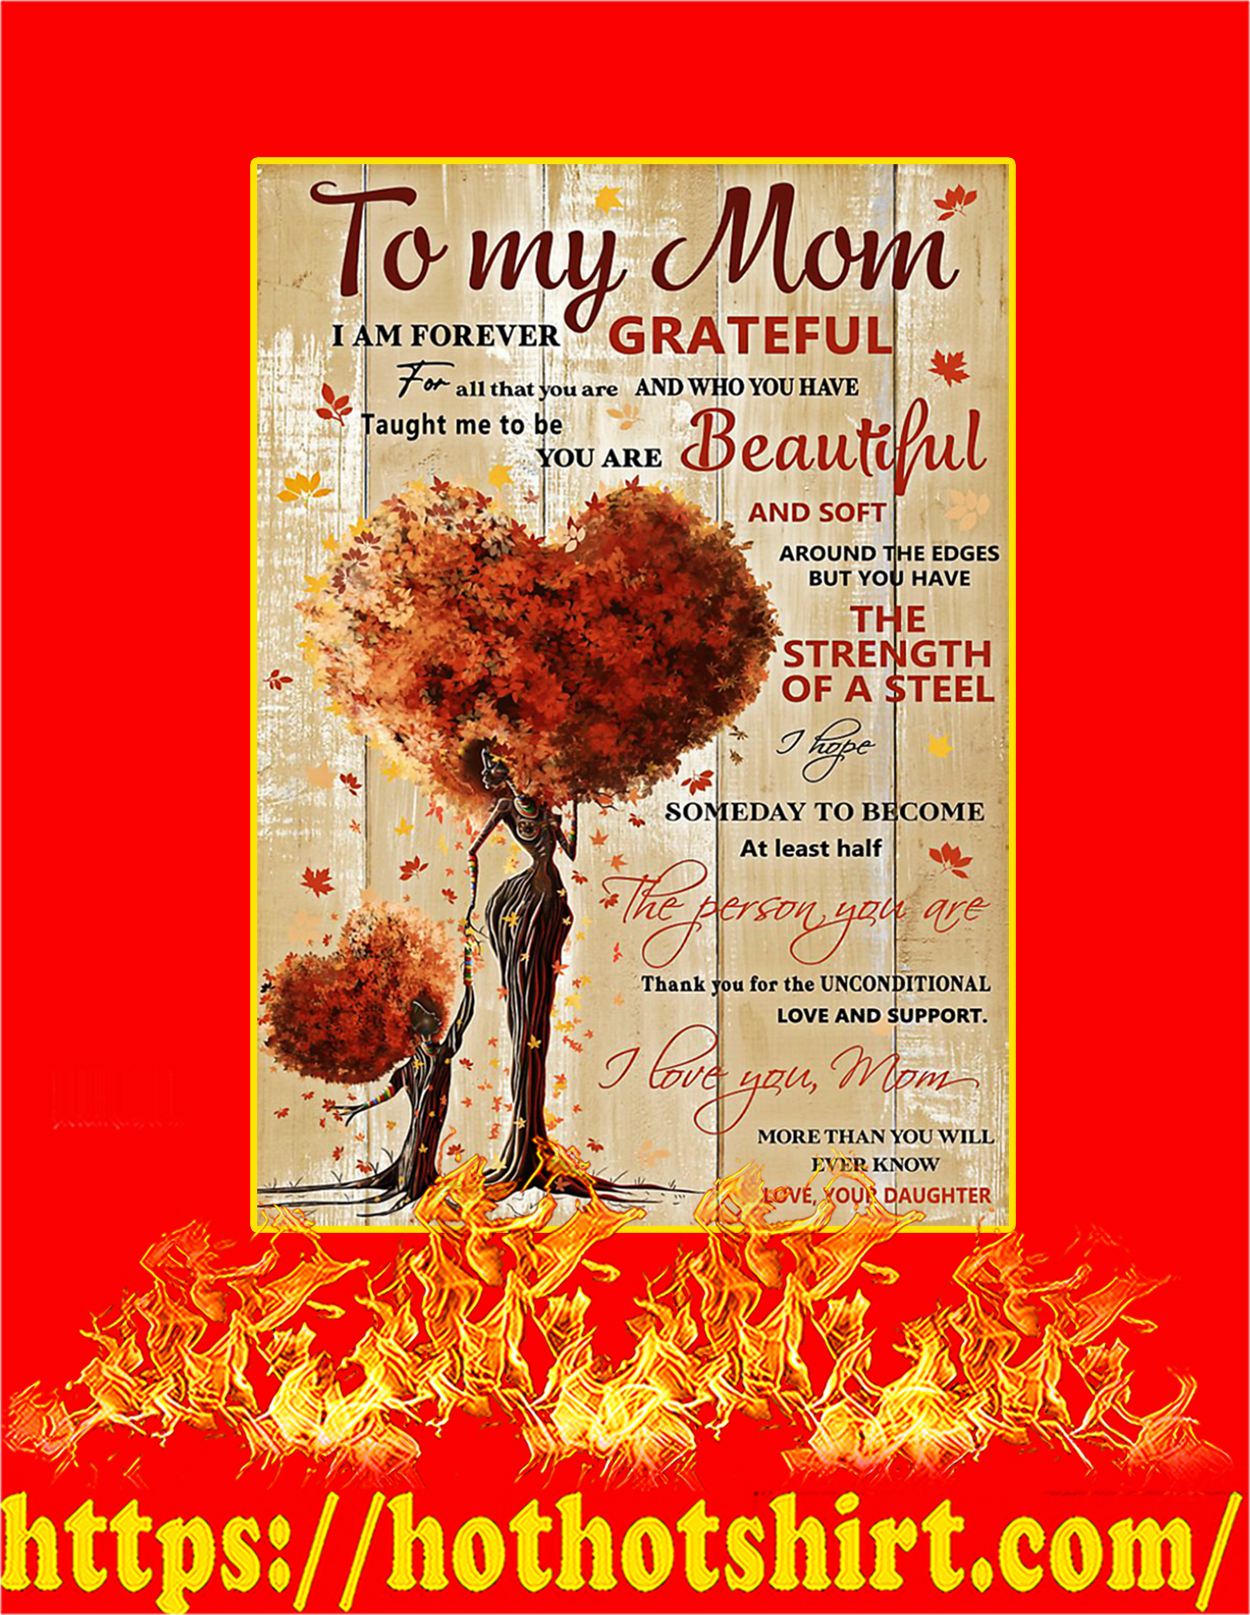 To my mom I'm forever grateful daughter poster - A3